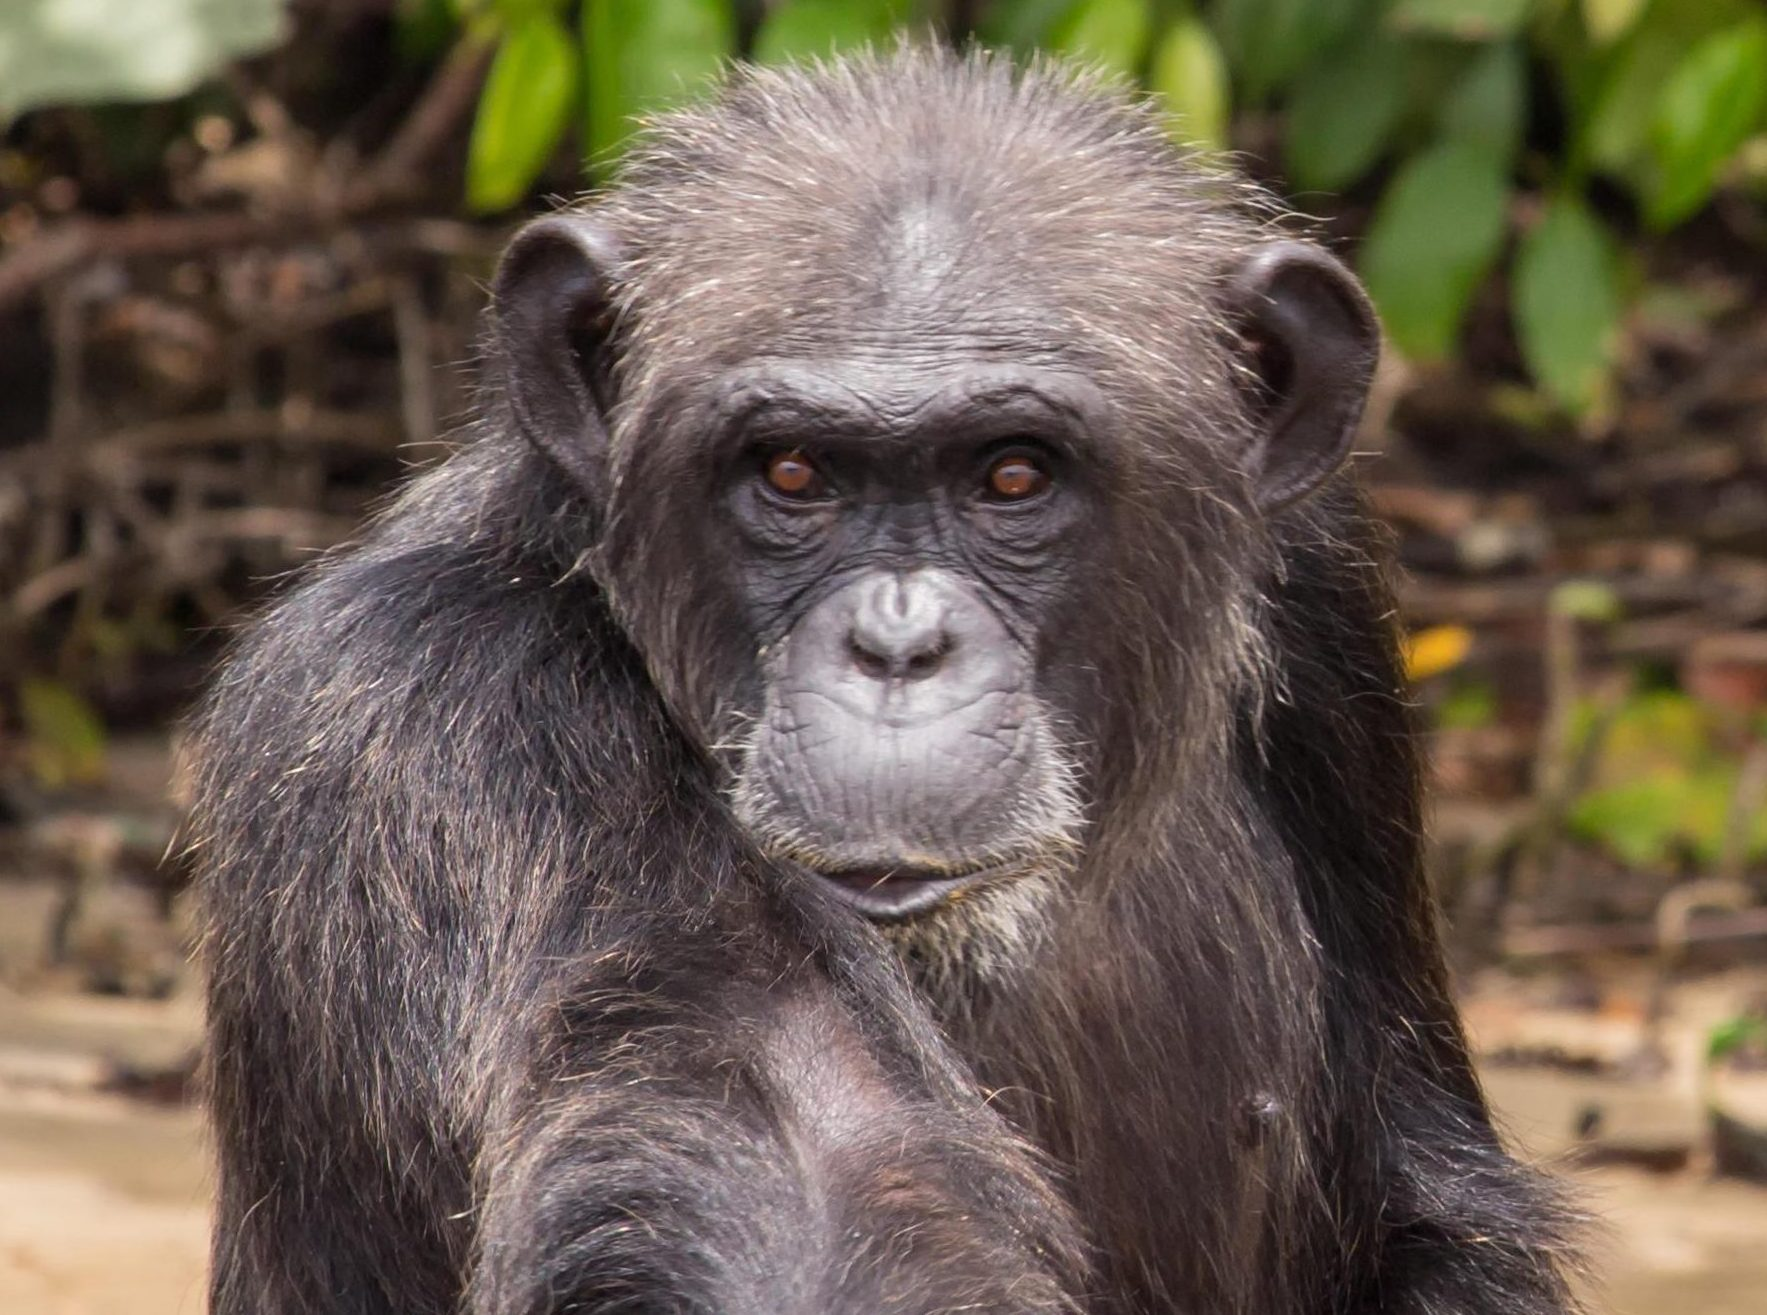 The secret African island inhabited by super aggressive 'monster' chimps released from US labs